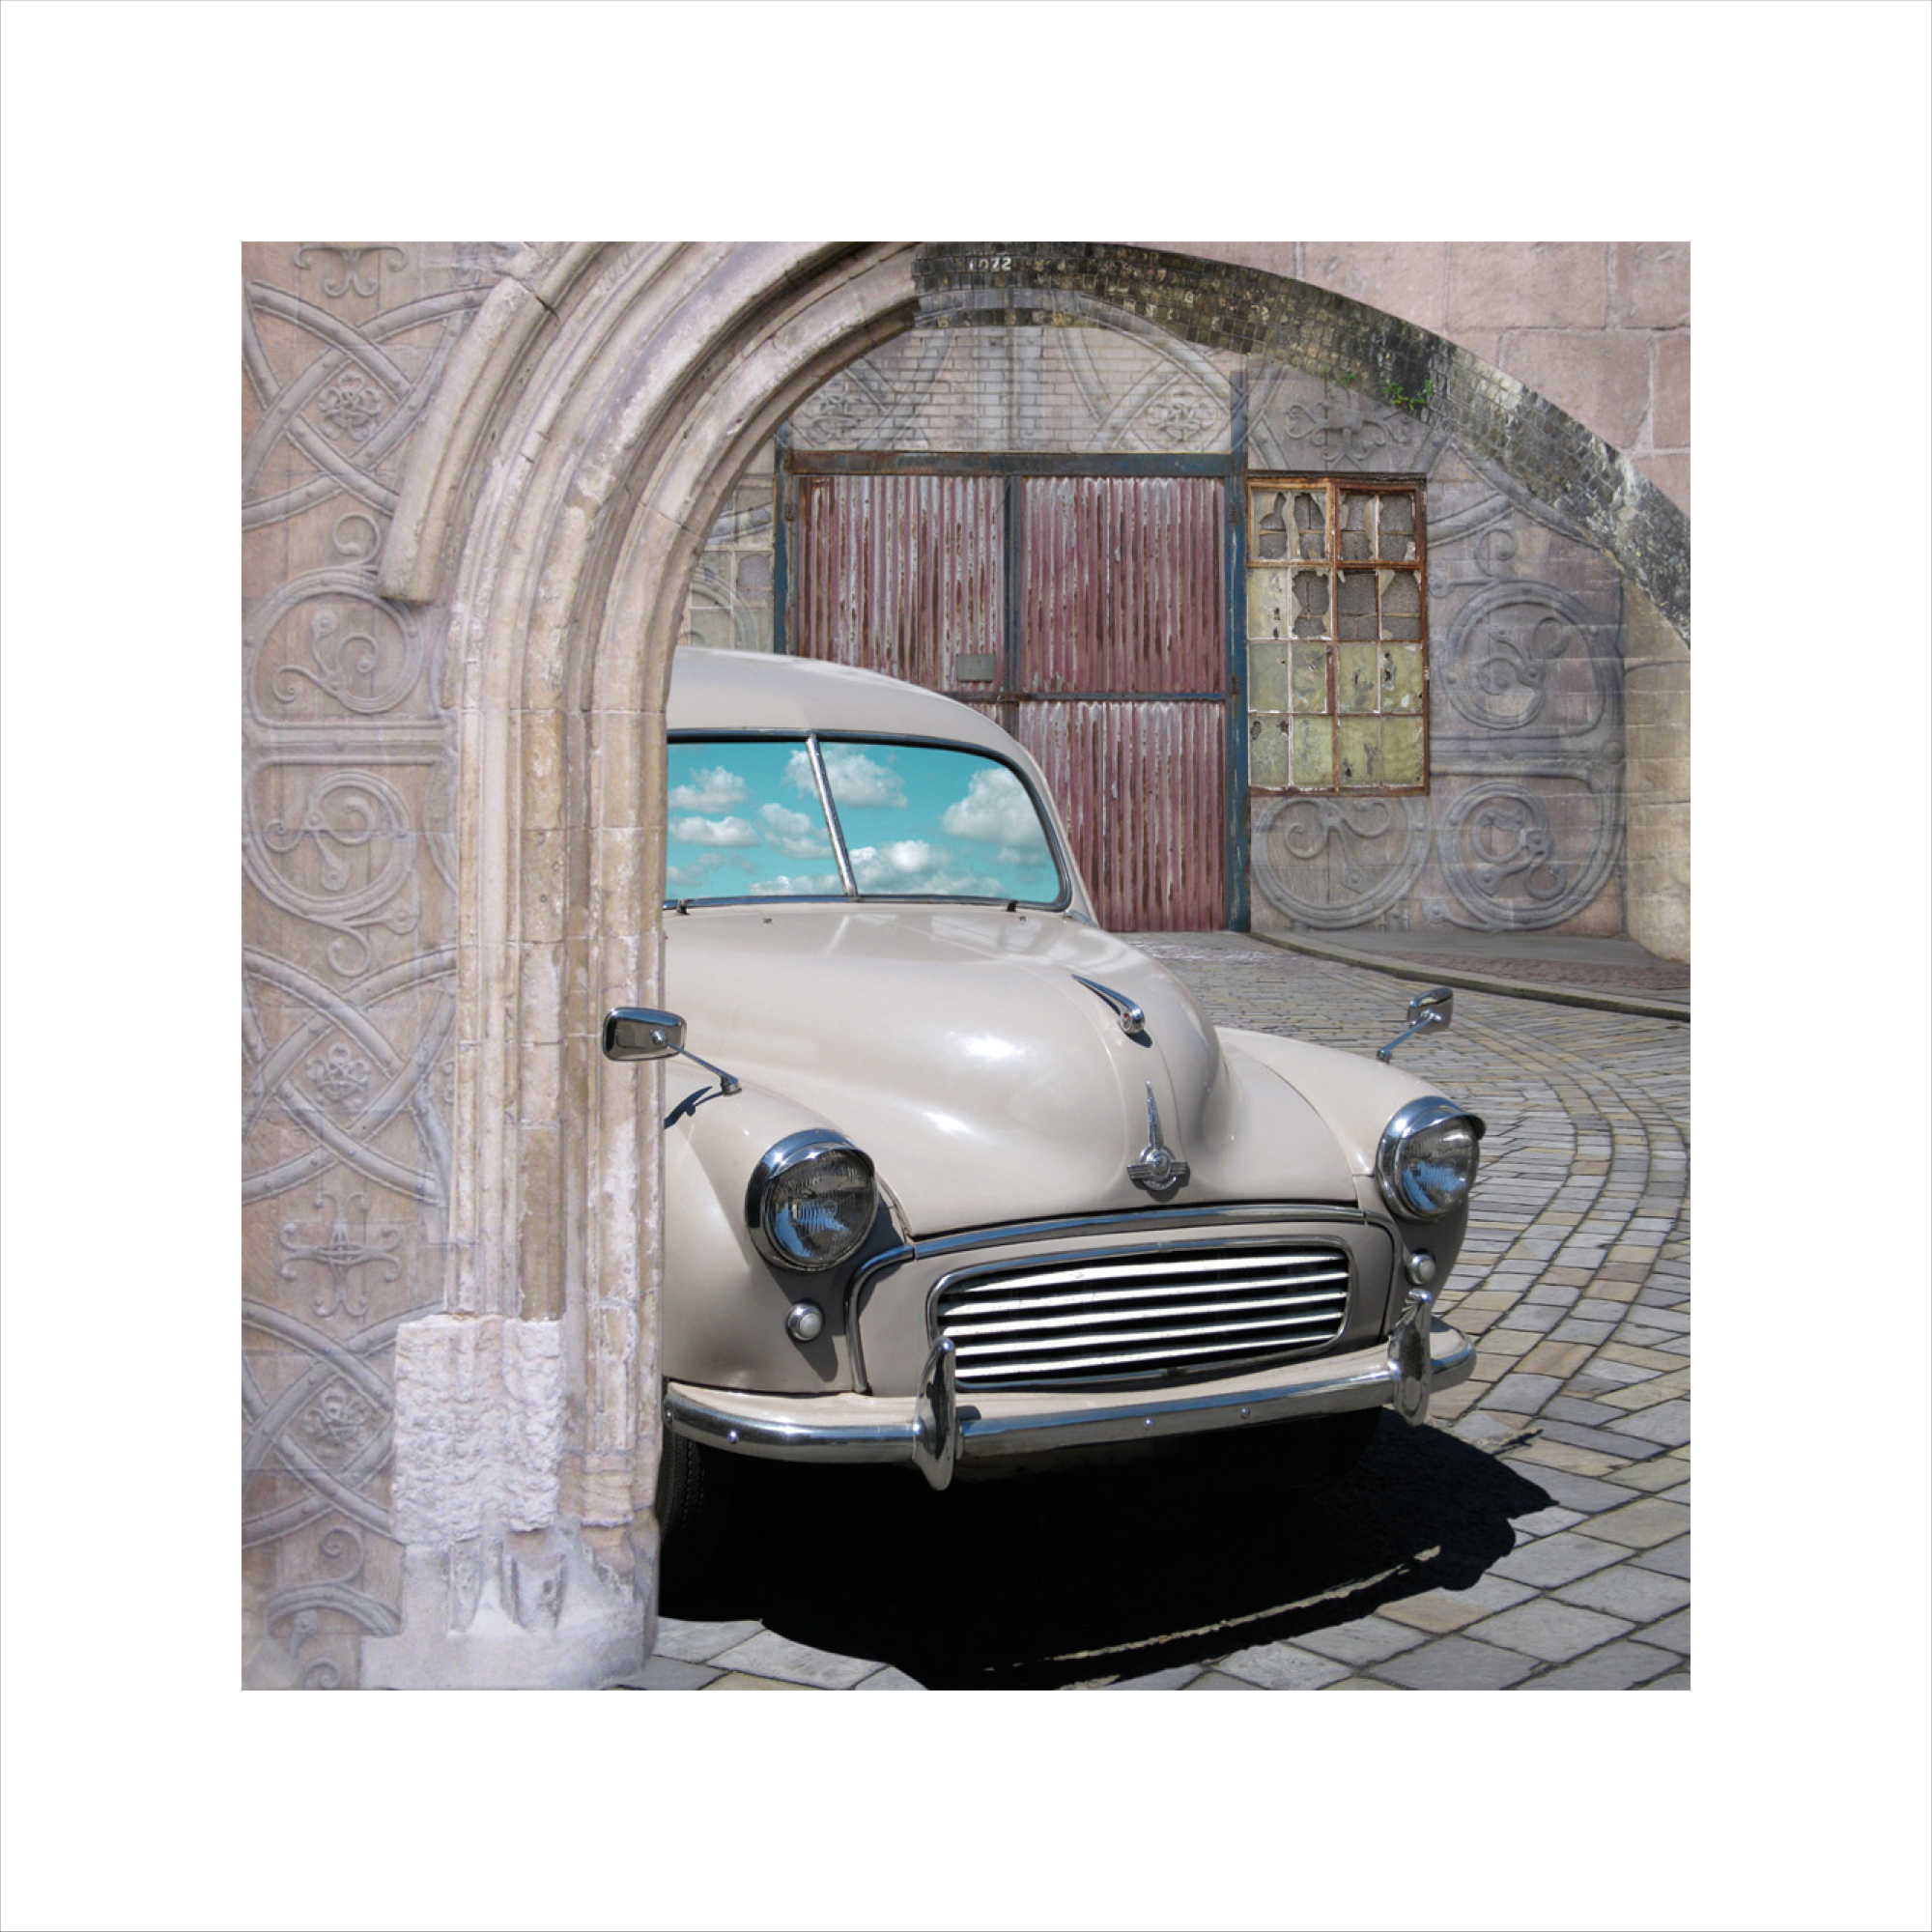 Claire Gill, Artist Claire Gill, Wallscape 12 Limited Edition Print, Limited edition print, wallscapes, buy art, collect art, digital photomontagee